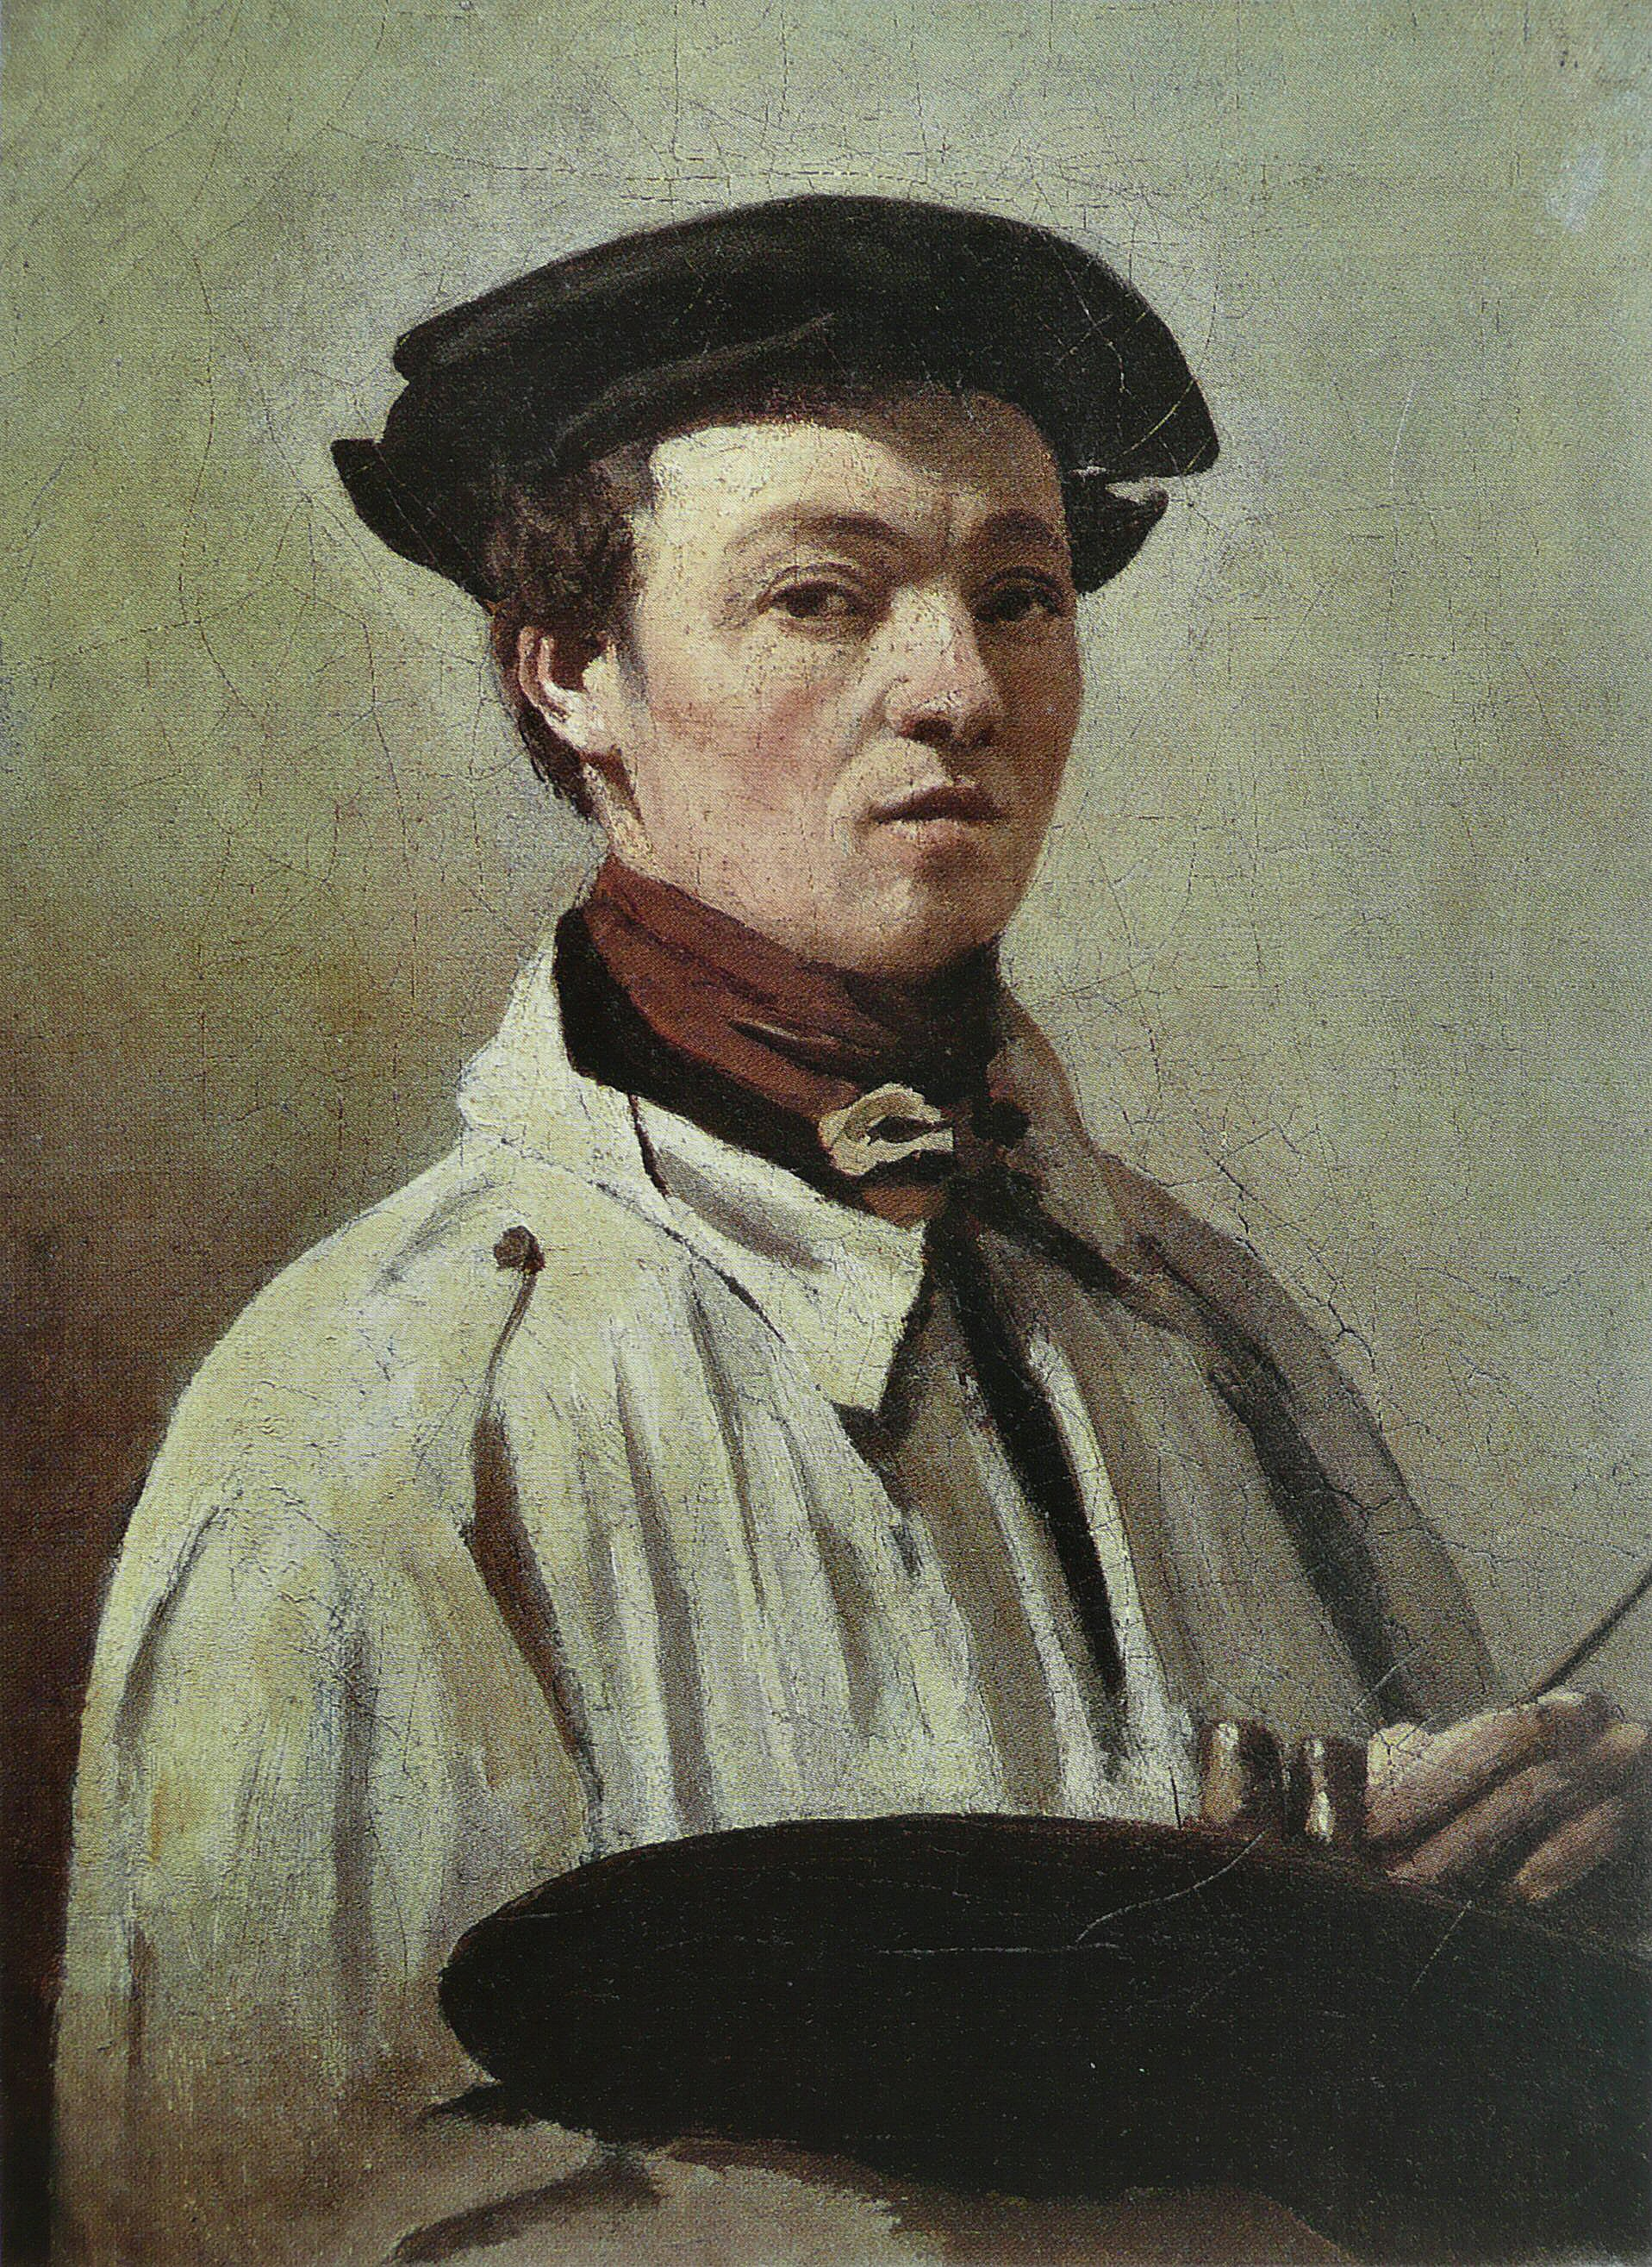 Image of Jean-Baptiste Camille Corot from Wikidata